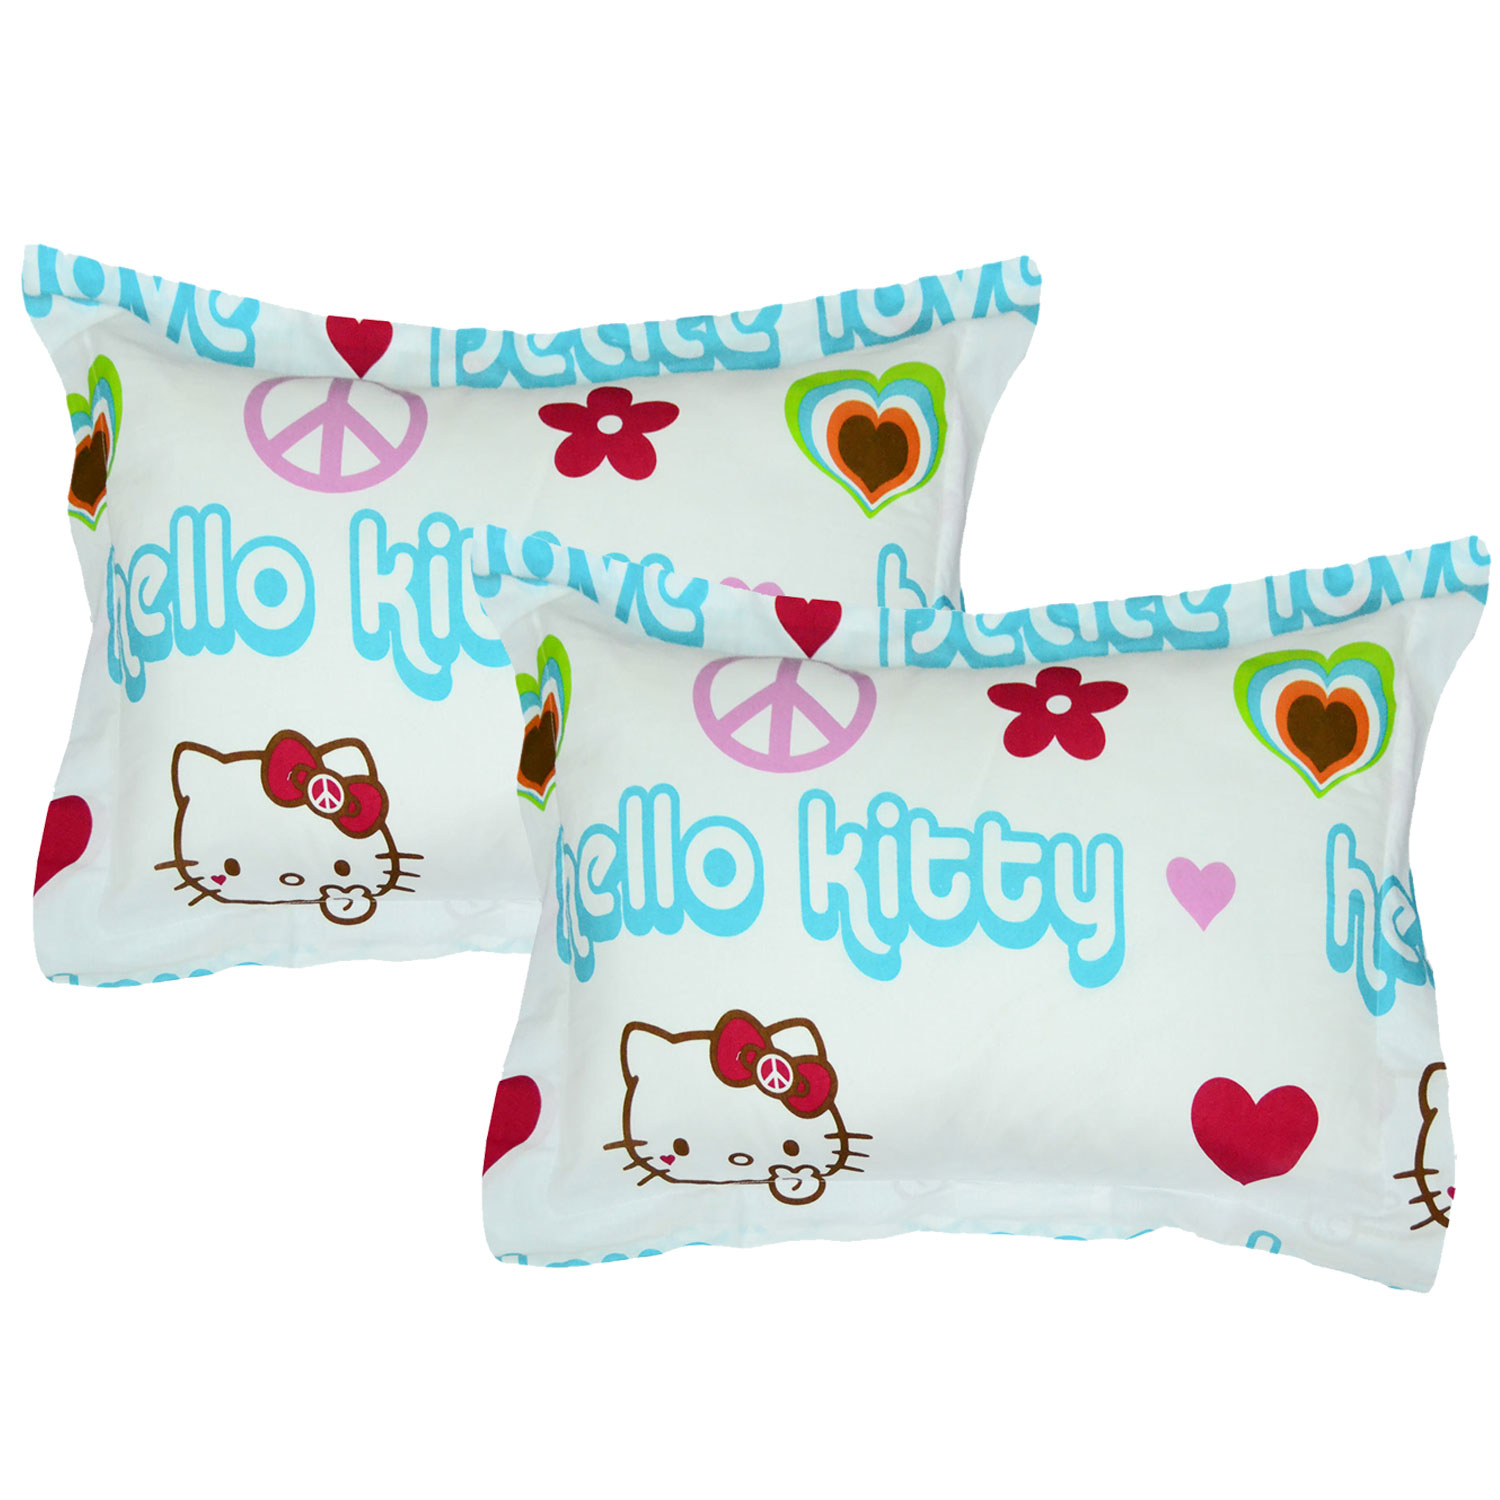 Store51 Llc 12606548 Hello Kitty Pillow Shams Set Peace Sign Bedding Accessories